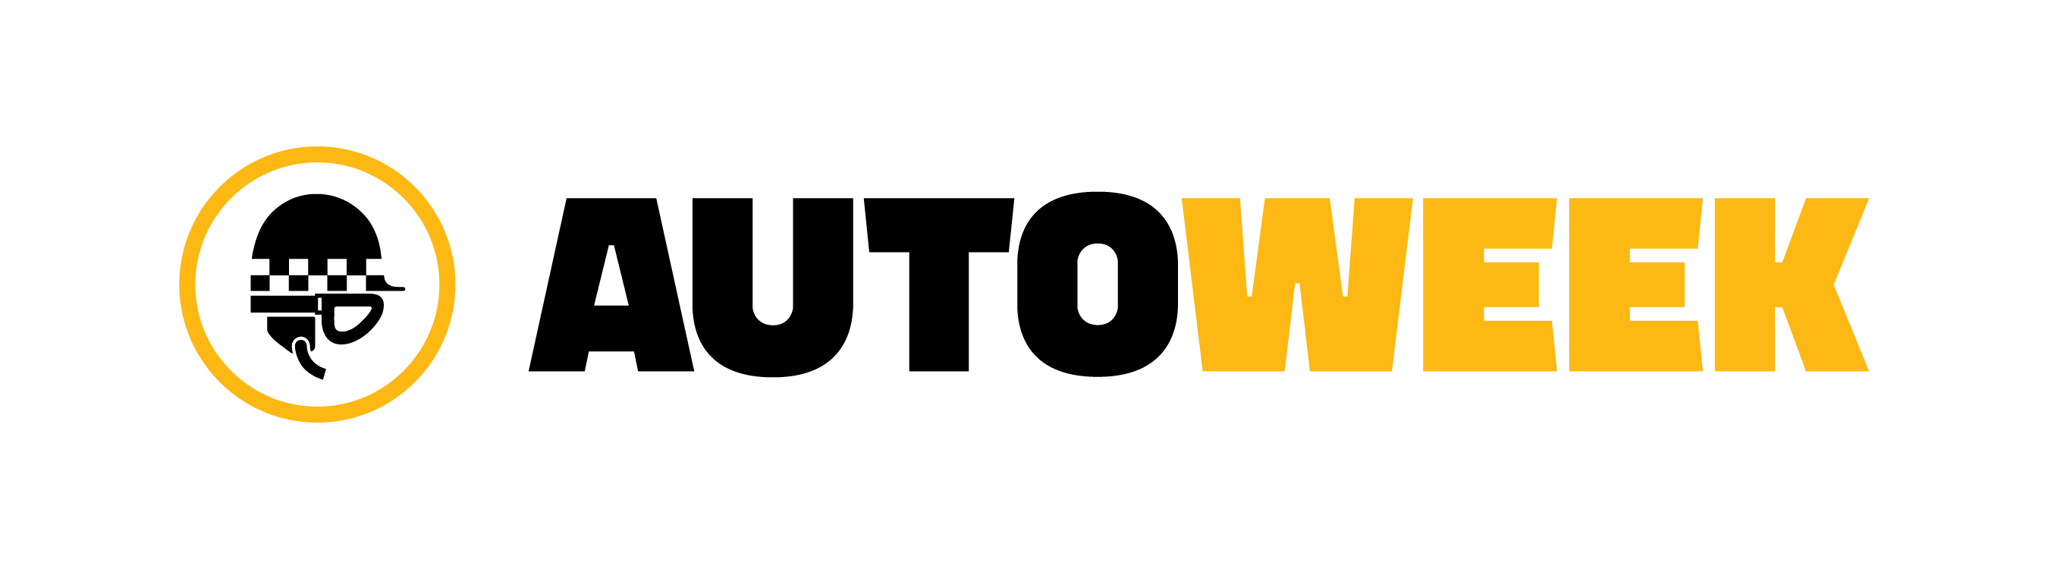 Image result for autoweek logo